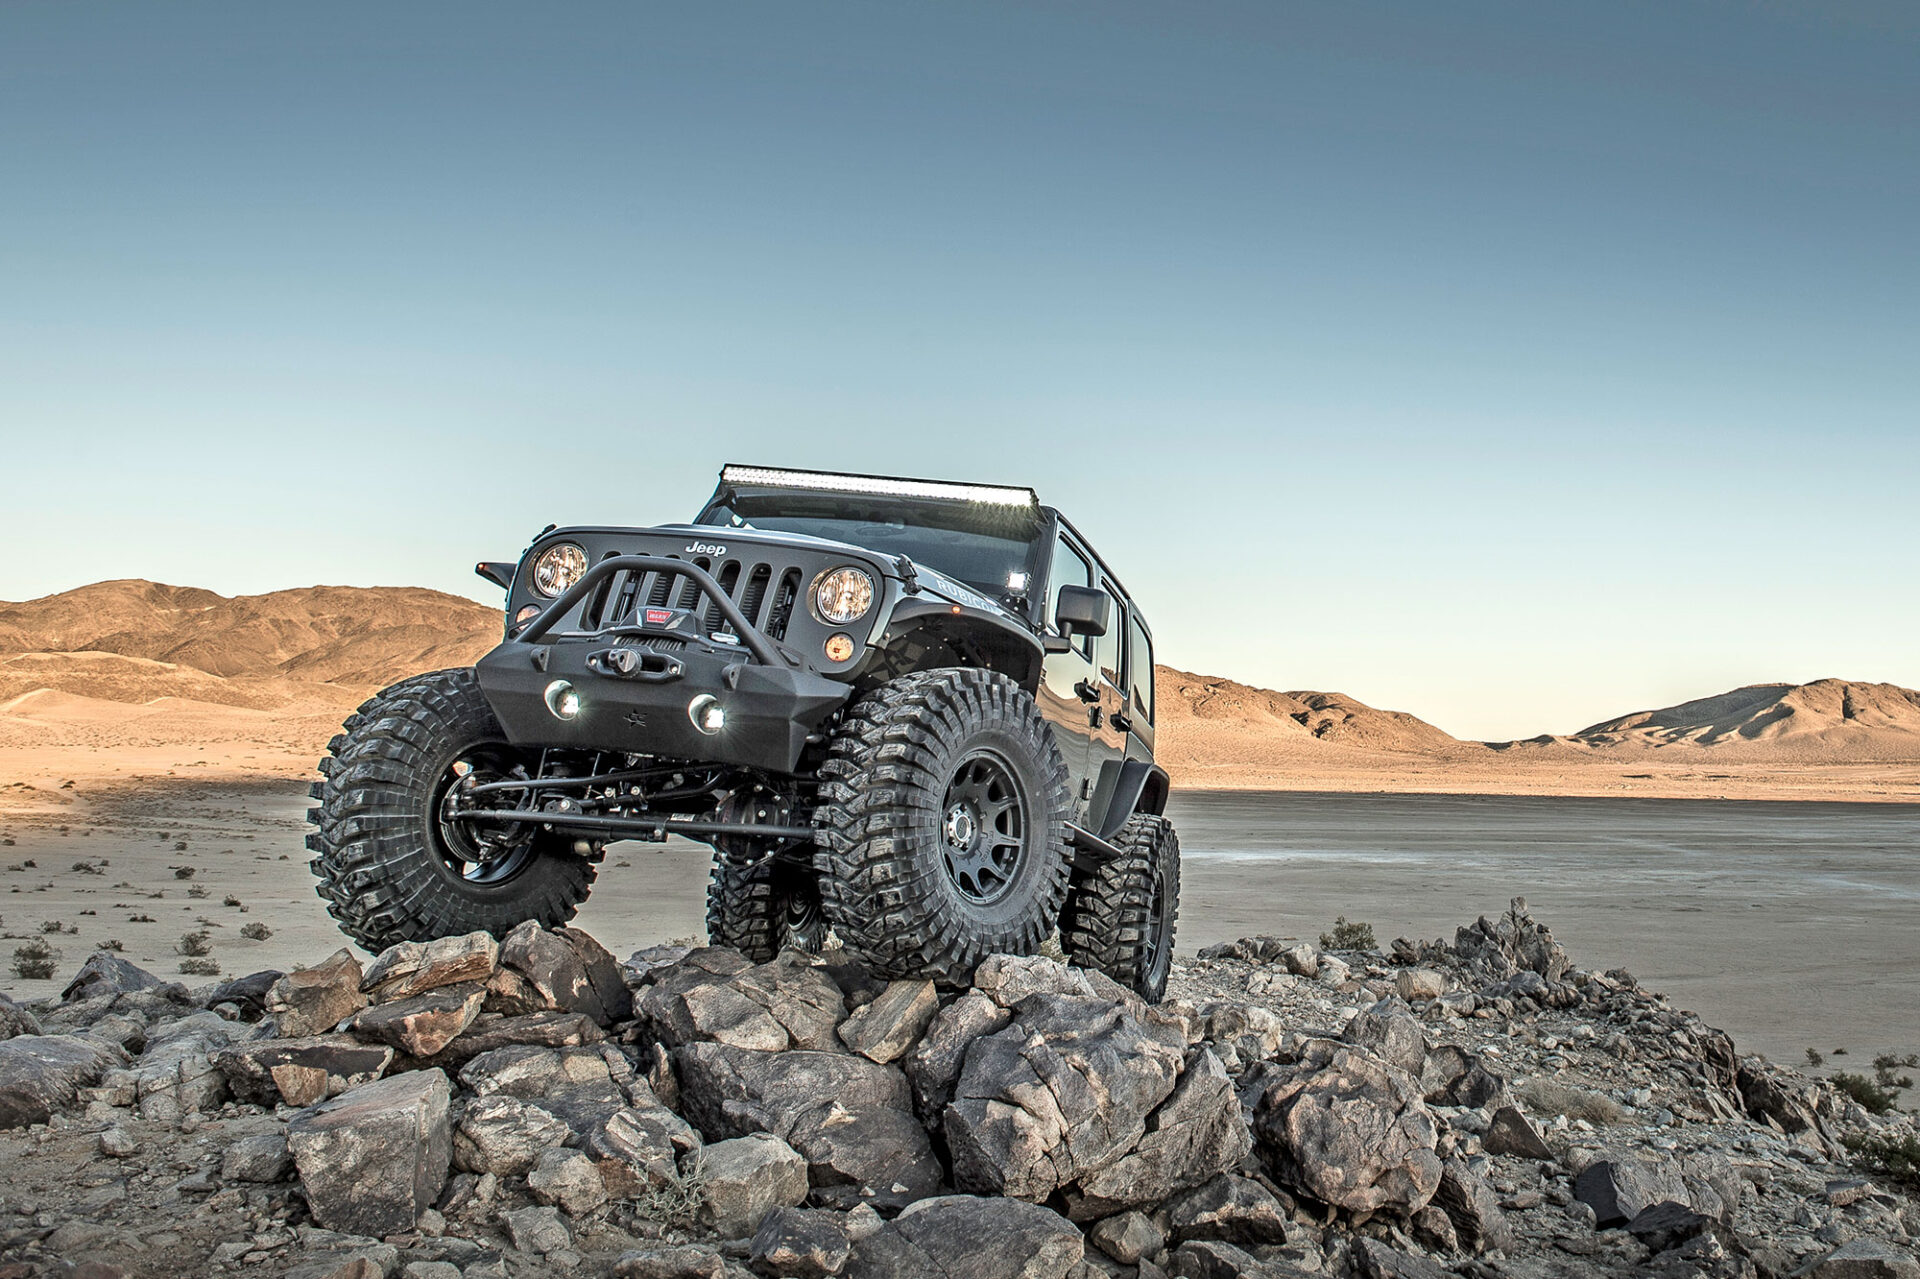 Vehicle outfitted with extreme-off-road Maxxis tires crossing desert rocks.